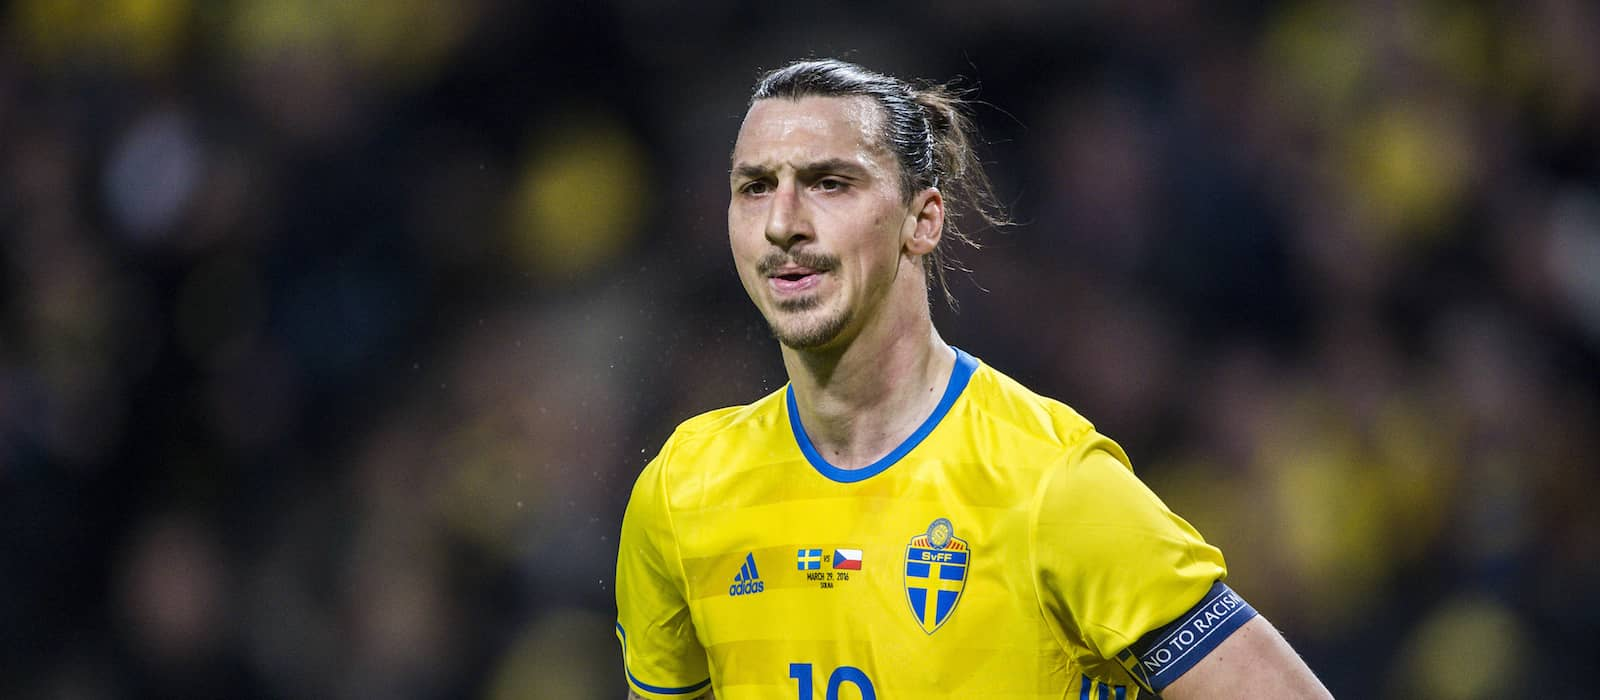 Manchester United news round-up including Ibrahimovic, Mourinho and Di Maria